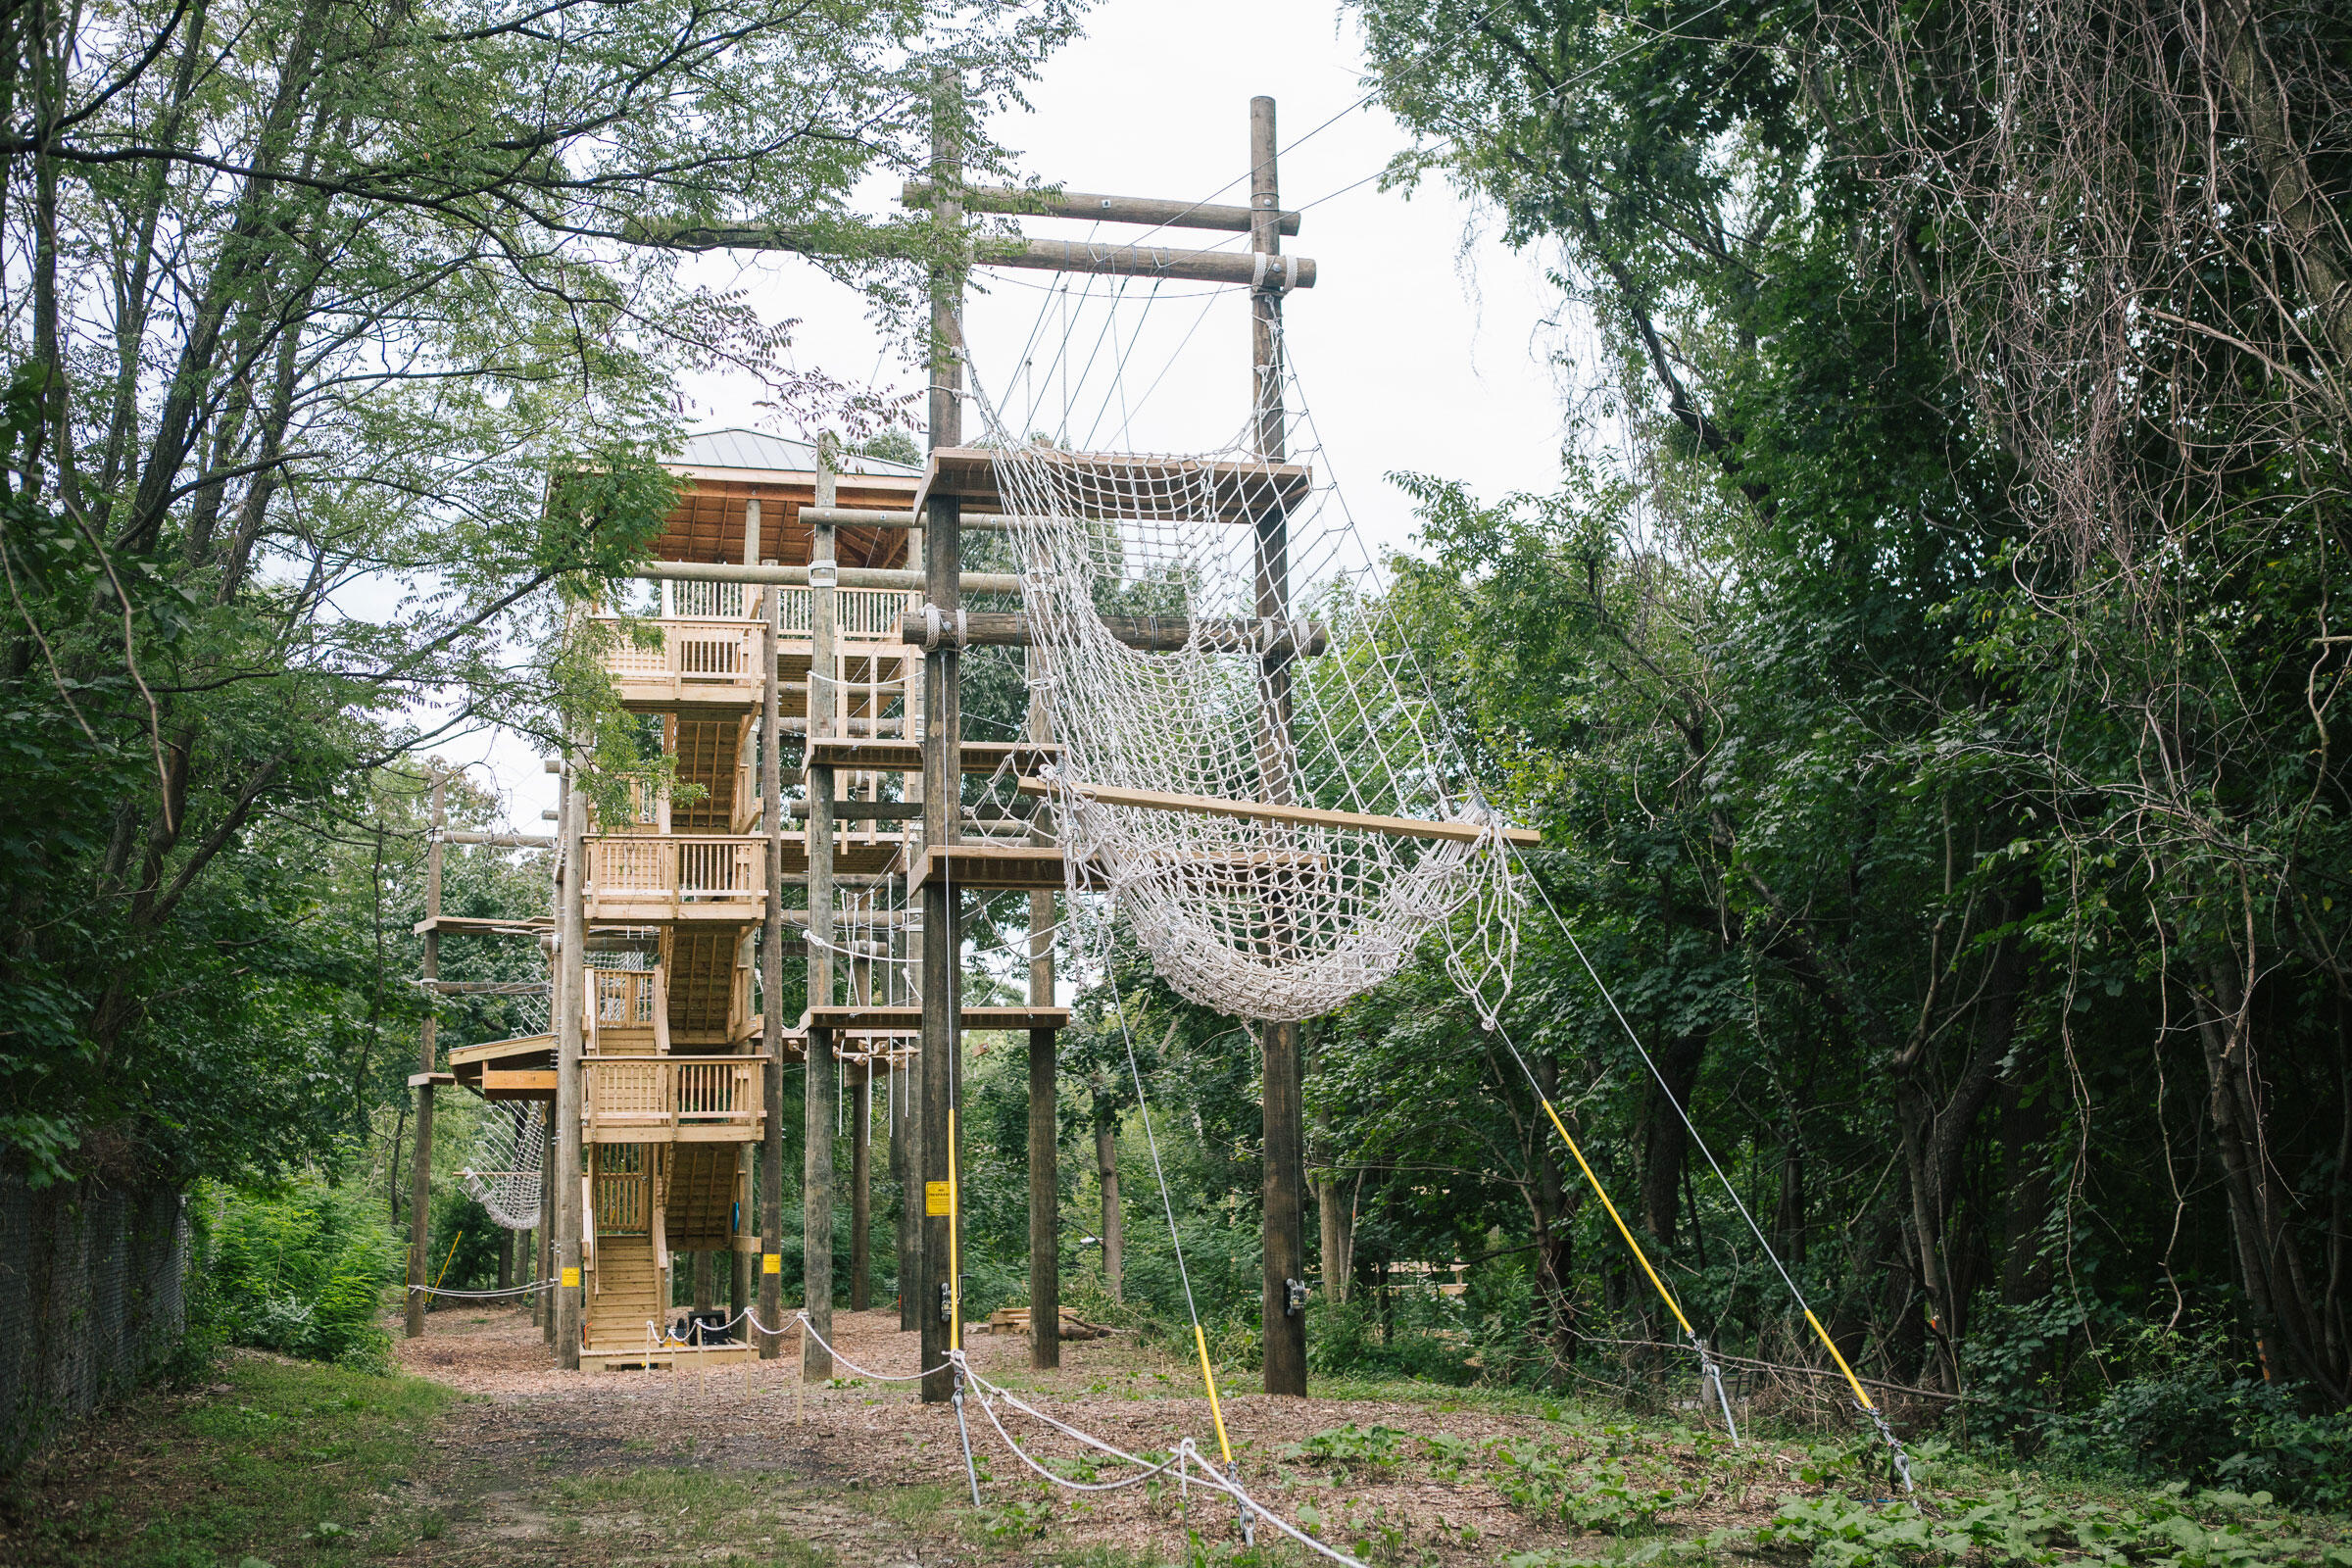 Philadelphia Outward Bound School's challenge course and viewing tower at The Discovery Center. Michelle Gustafson